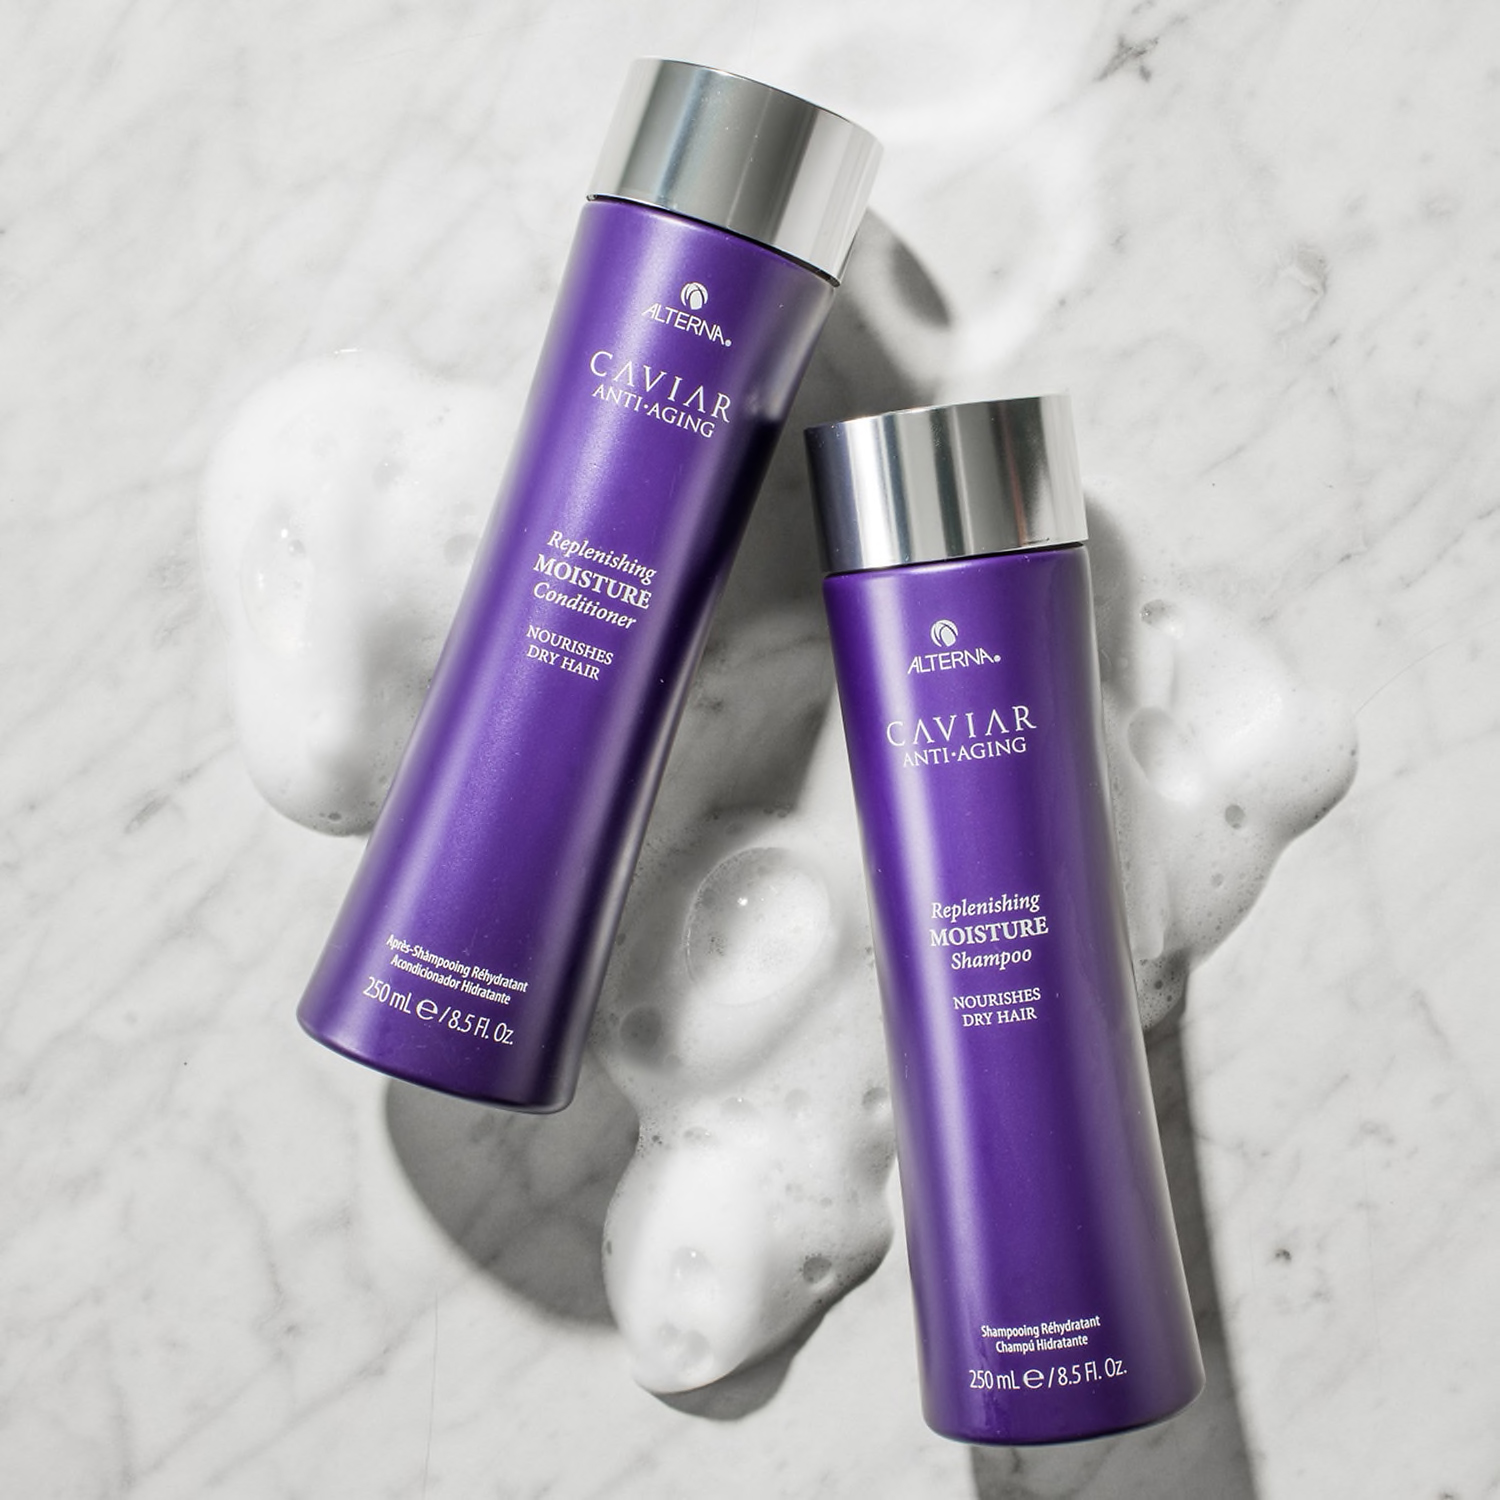 Hydrating Shampoo & Conditioner: Alterna Haircare CAVIAR Anti-Aging® Replenishing Moisture Shampoo & Conditioner